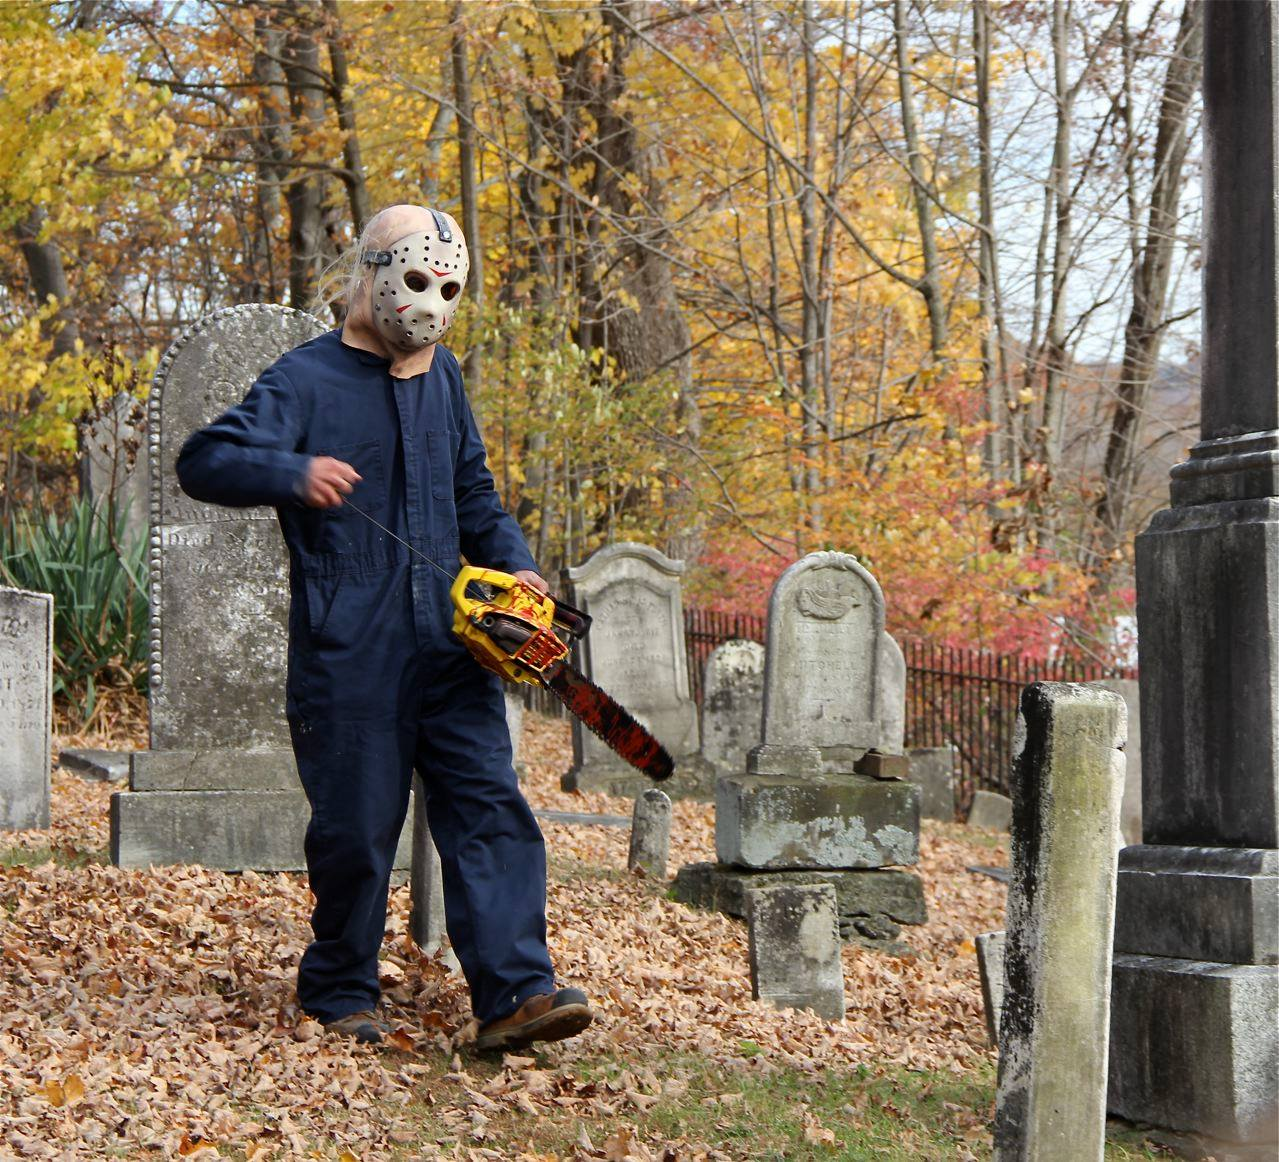 Friday The 13th in Blairstown